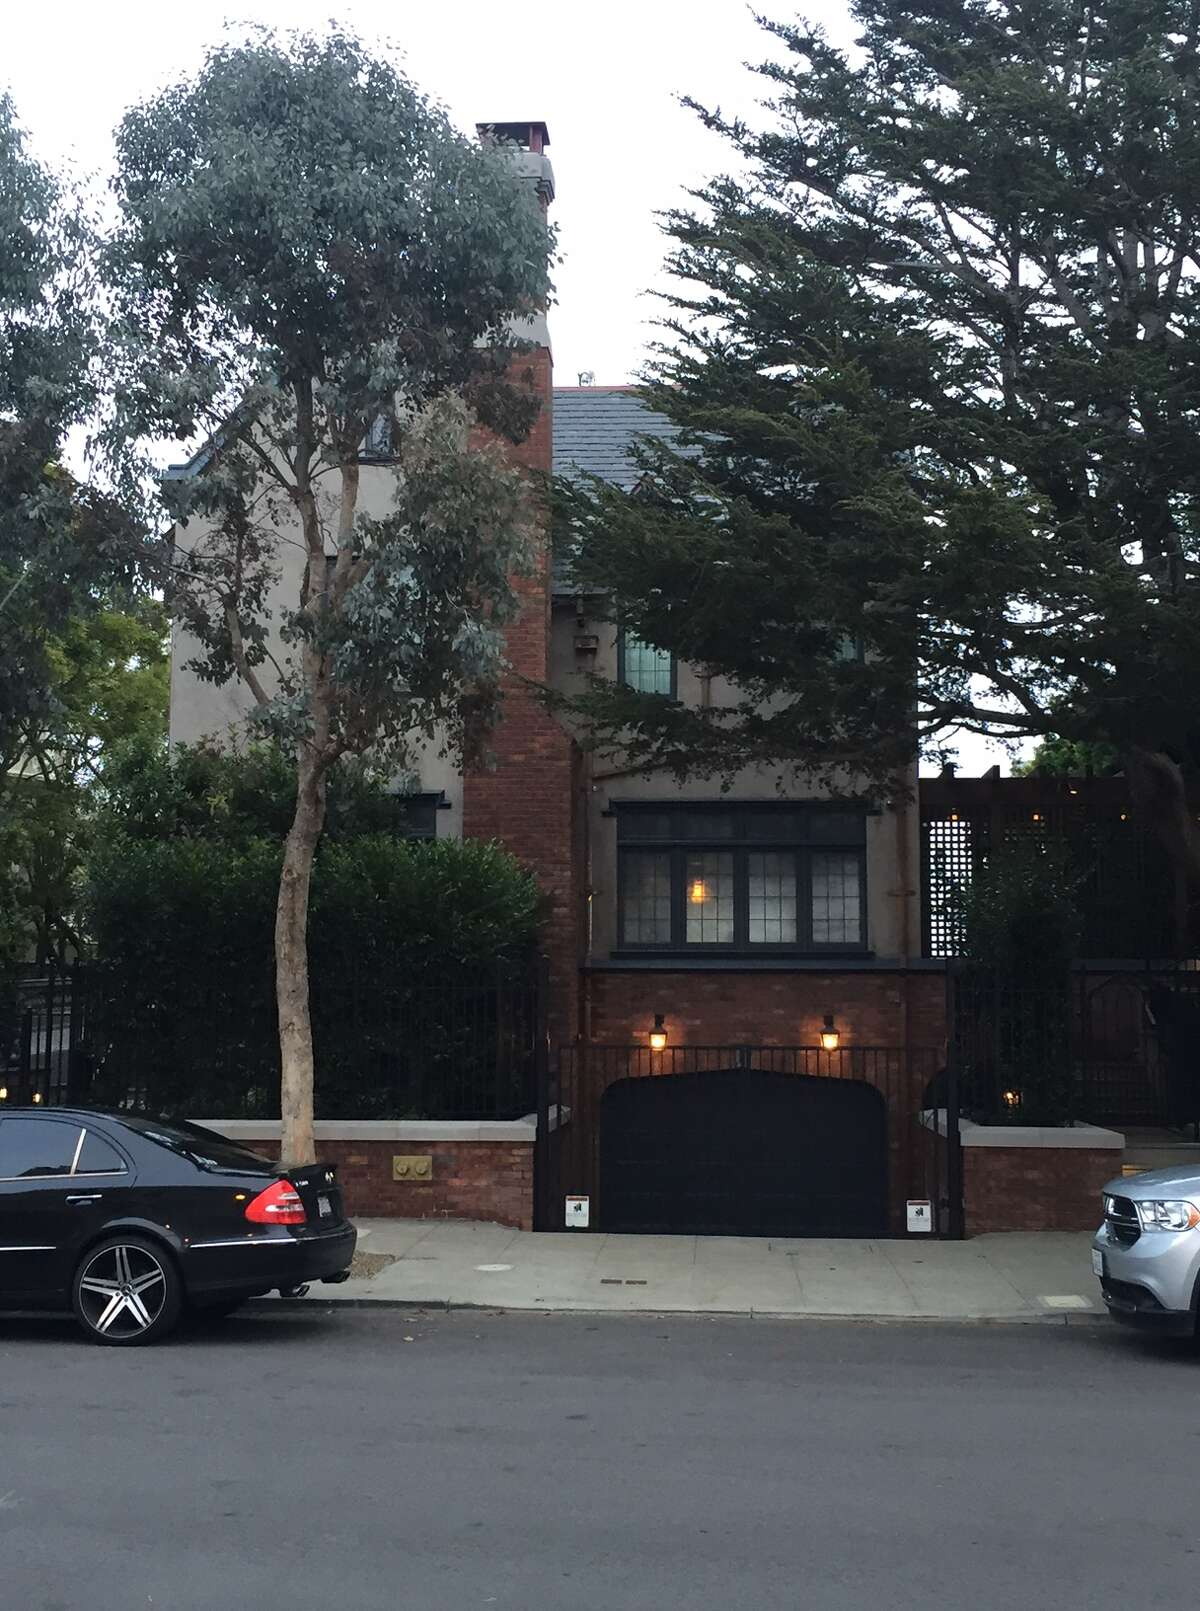 The driveway to Mark Zuckerberg's $10 million house in San Francisco's Mission District sits empty while his security detail's SUV's take up